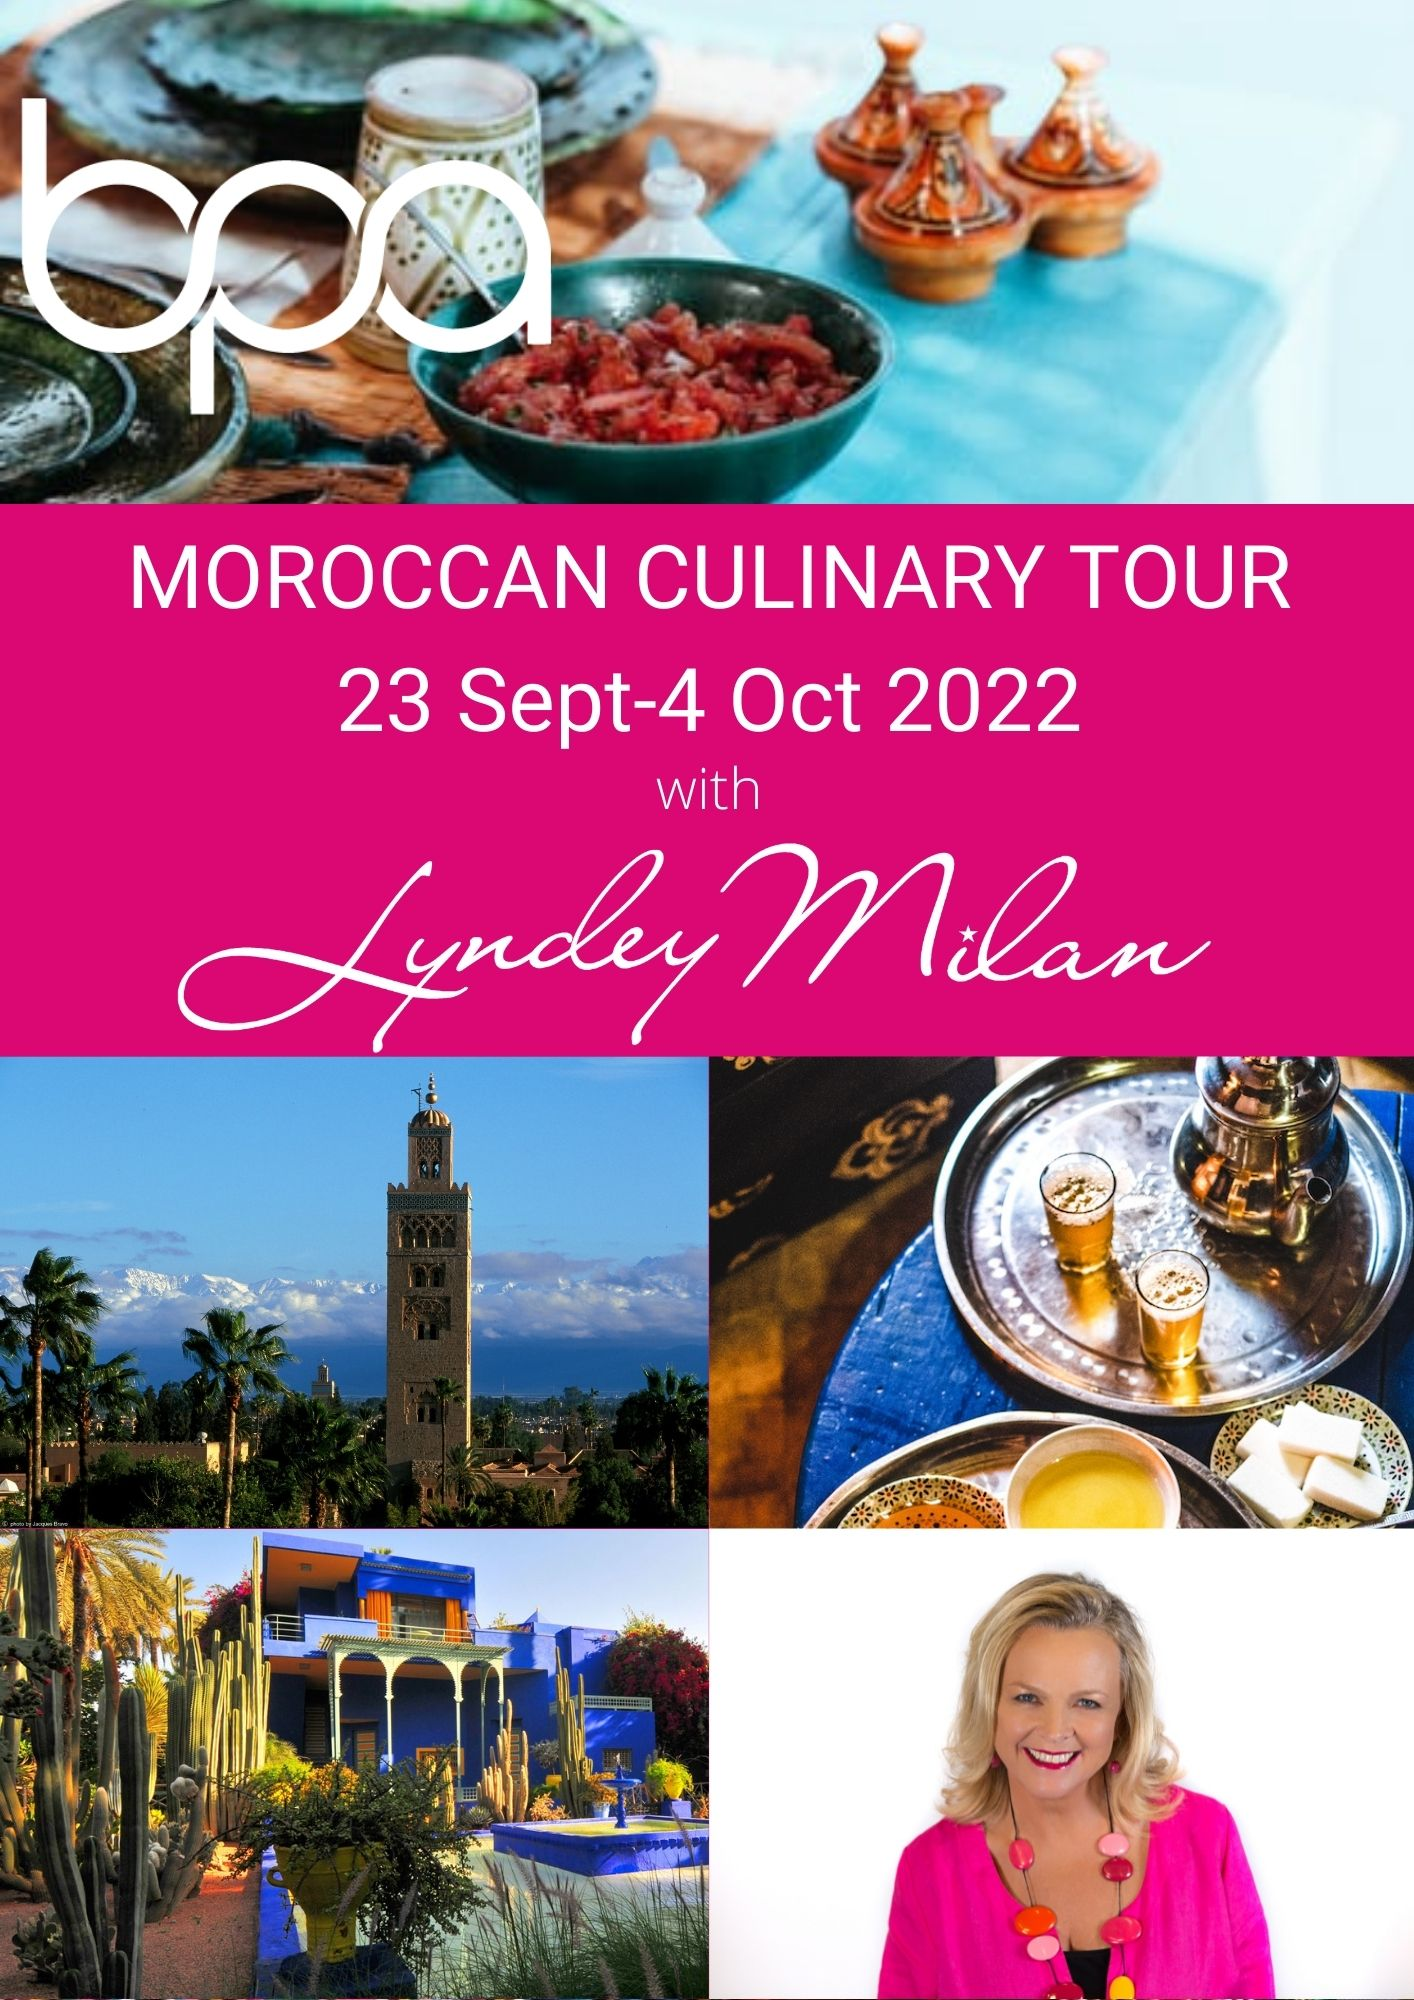 Moroccan Culinary Tour 23 Sept – 4 Oct 2022 (part 1)